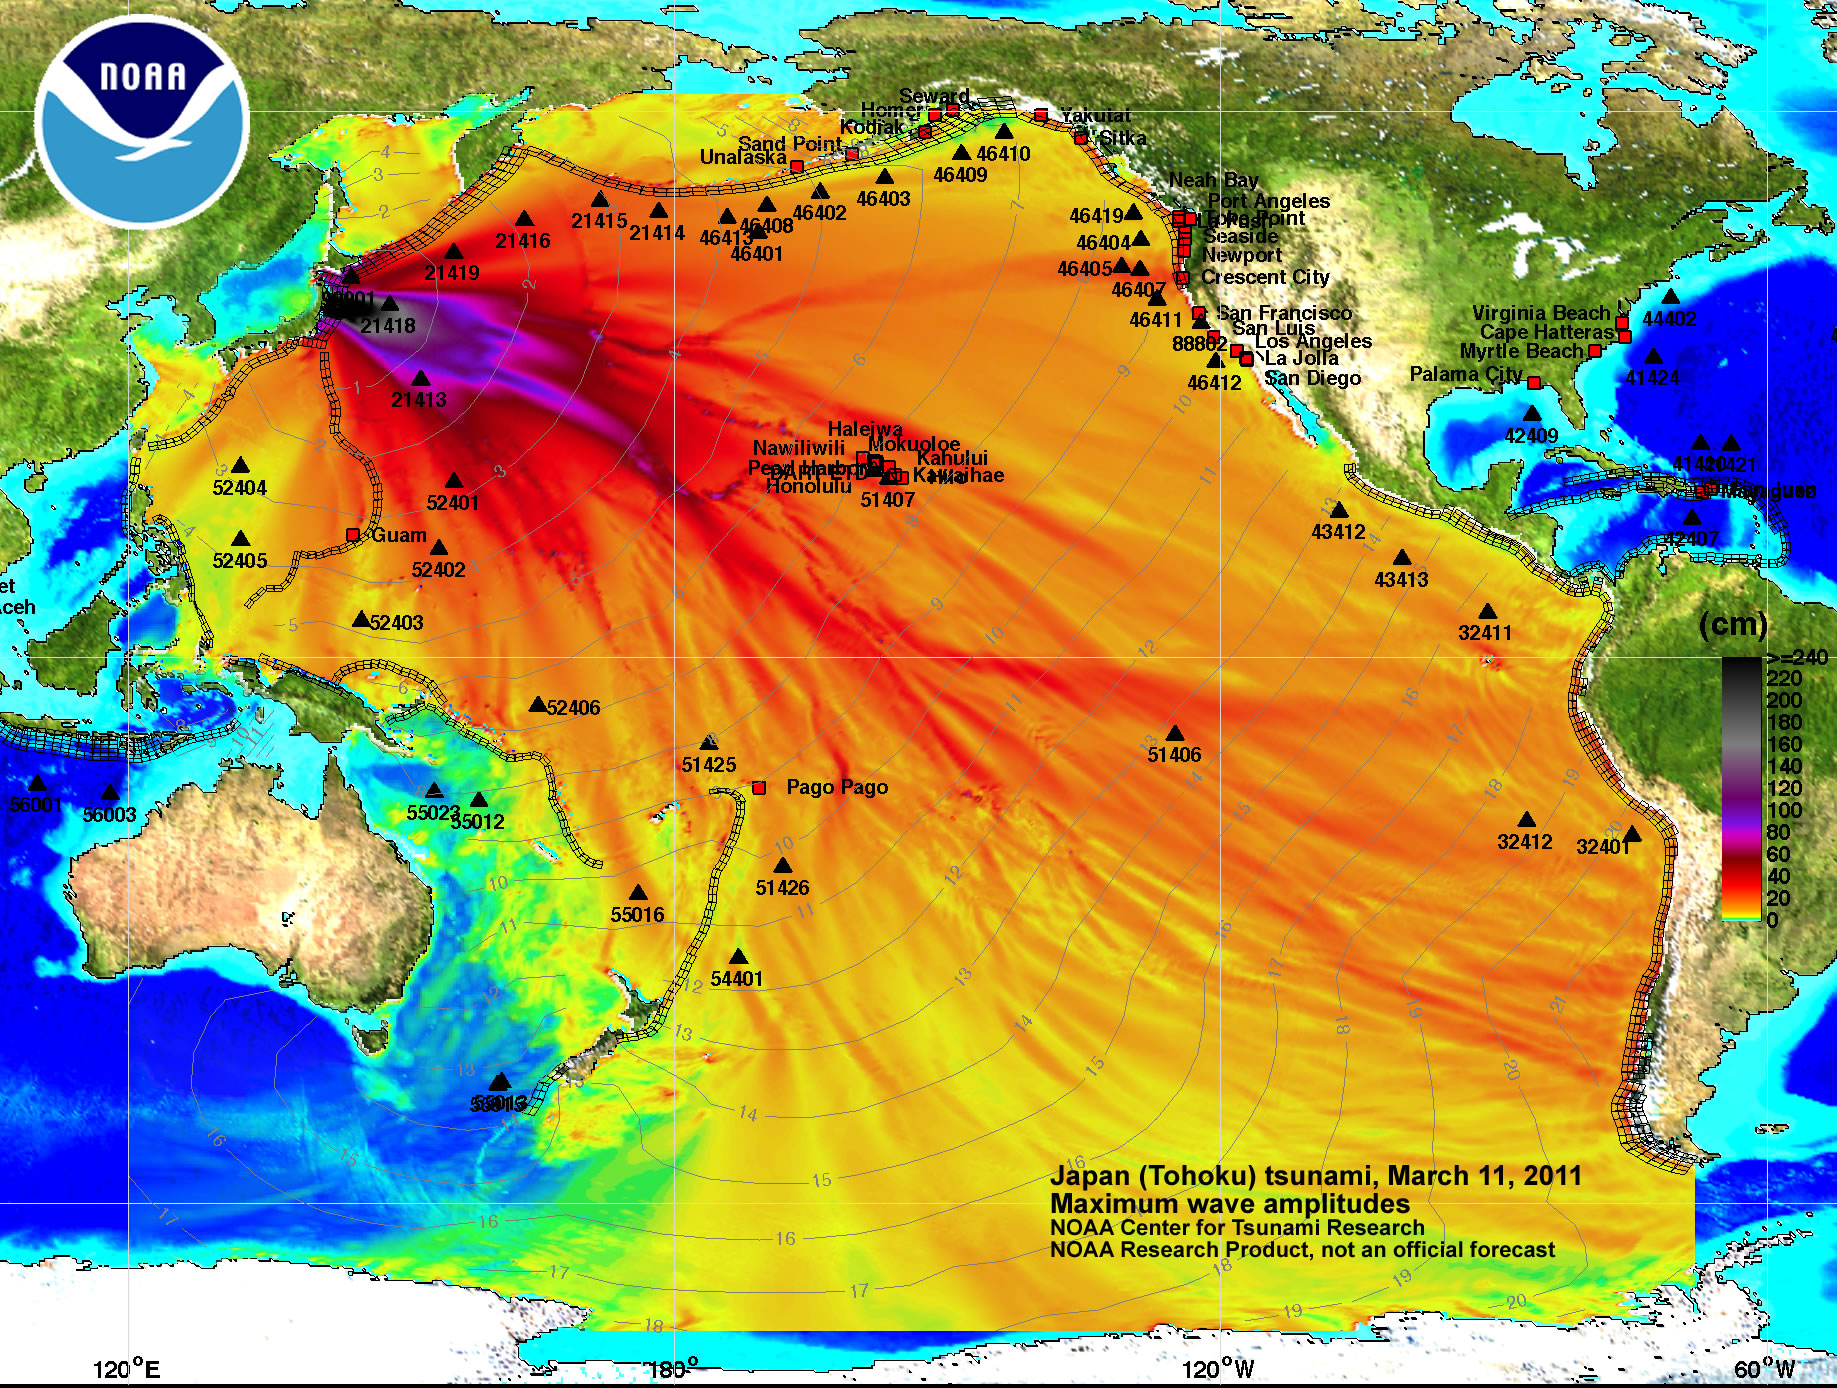 Noaa center for tsunami research tsunami event march 11 2011 high resolution maximum amplitude plot gumiabroncs Image collections